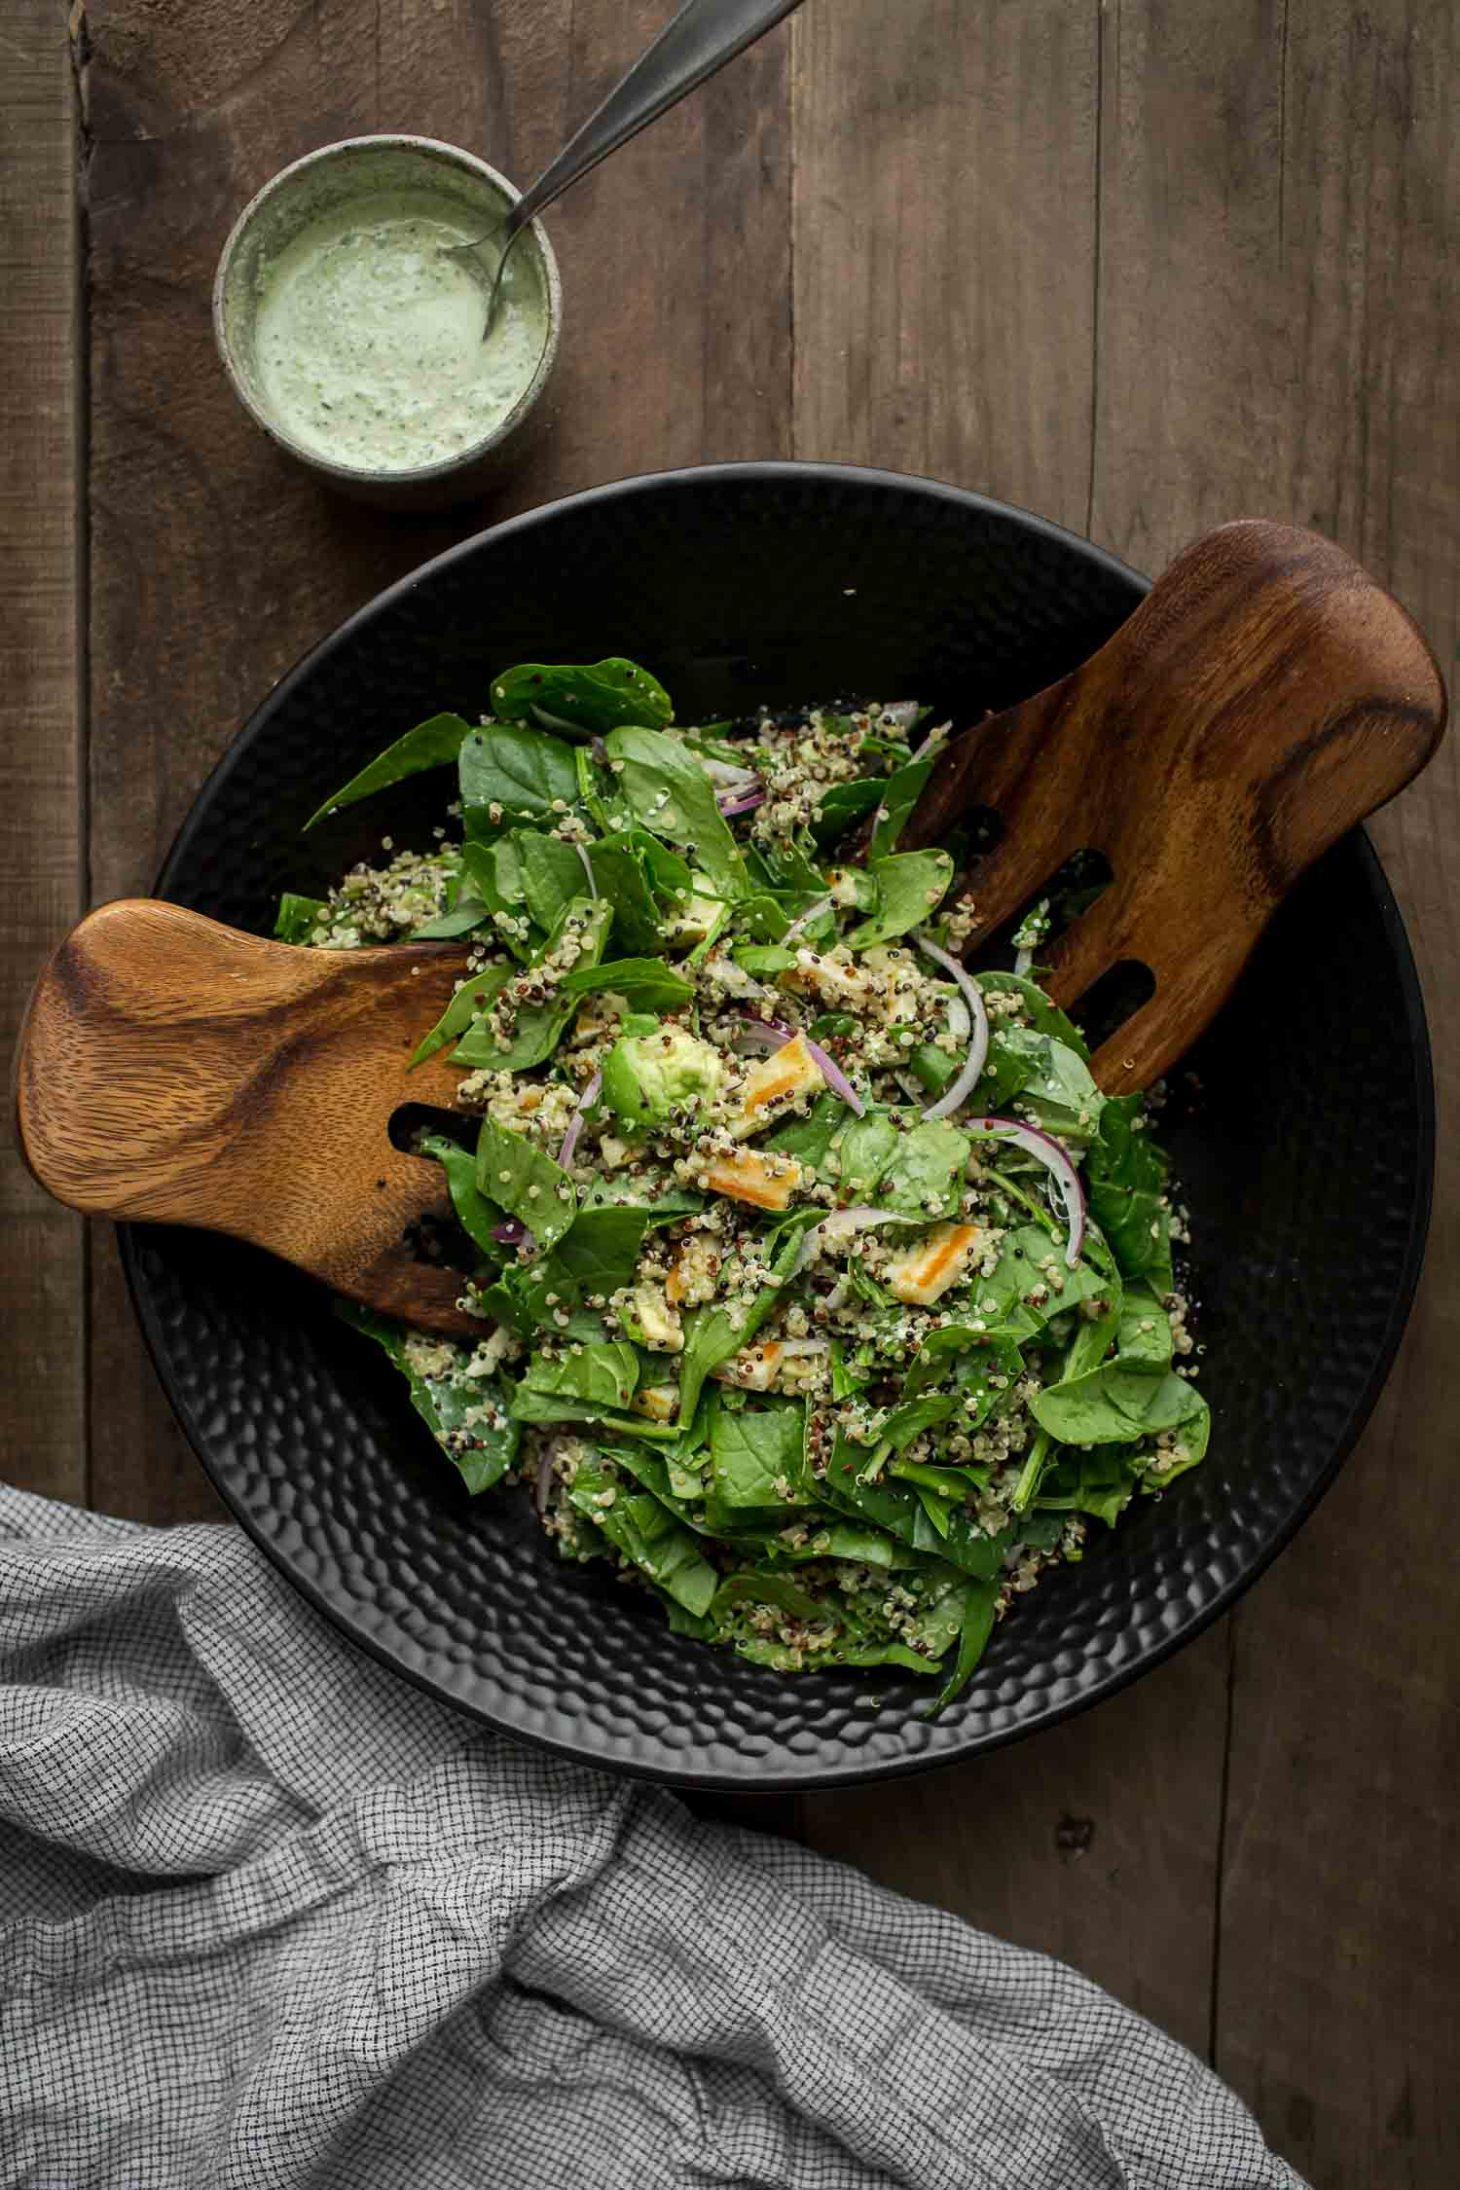 Halloumi Salad with Spinach, Quinoa, and Herbed Hemp Dressing | 30 Minute Vegetarian Dinners